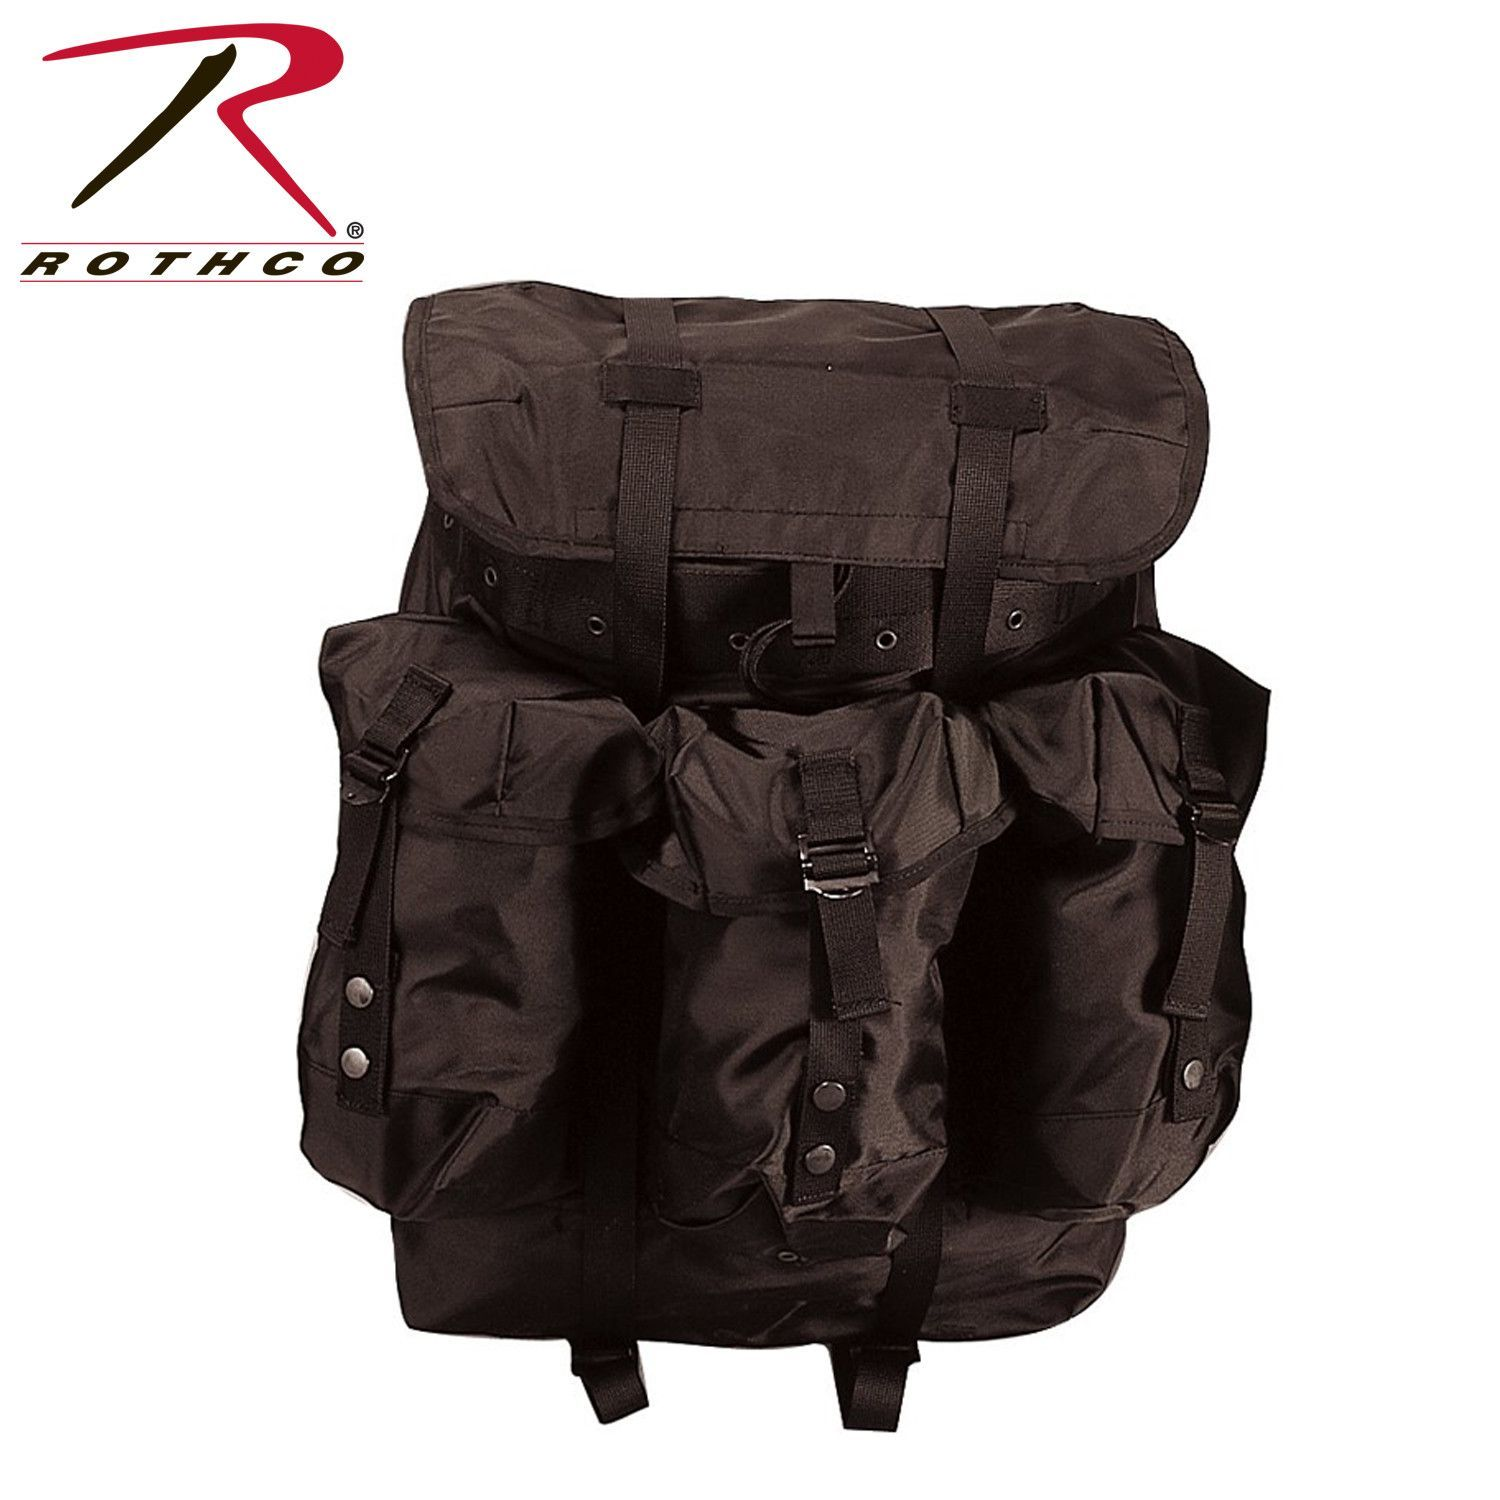 Rothco Large Alice Pack with Frame